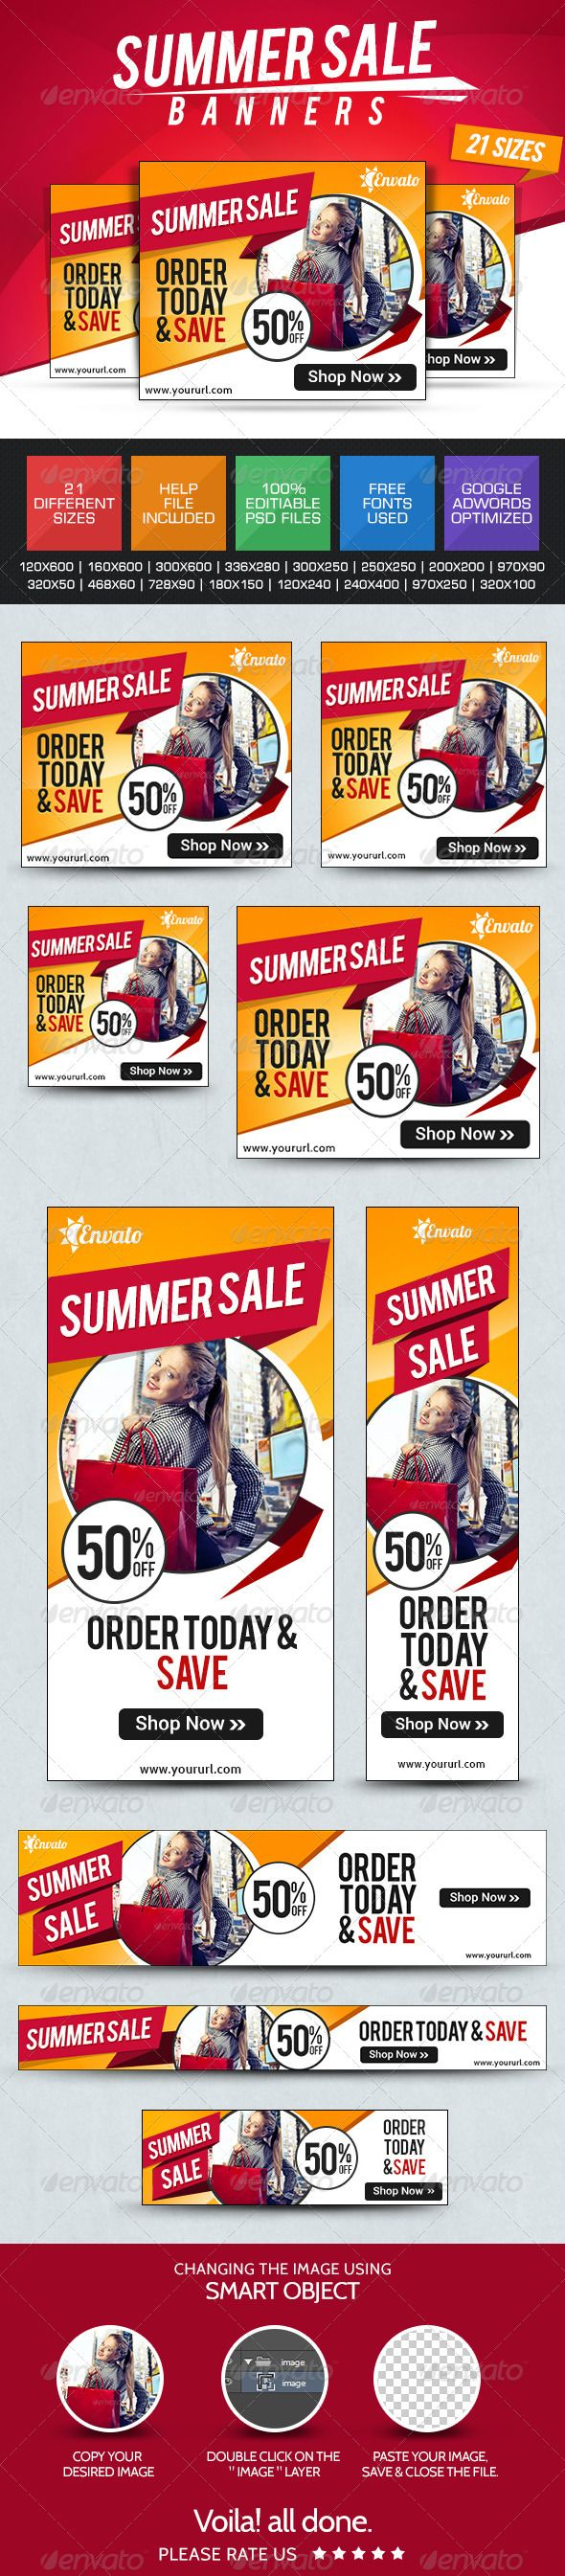 Summer Sale Web Banners Template PSD | Buy and Download: http://graphicriver.net/item/summer-sale-banners/7775157?WT.ac=category_thumb&WT.z_author=BannerDesignCo&ref=ksioks